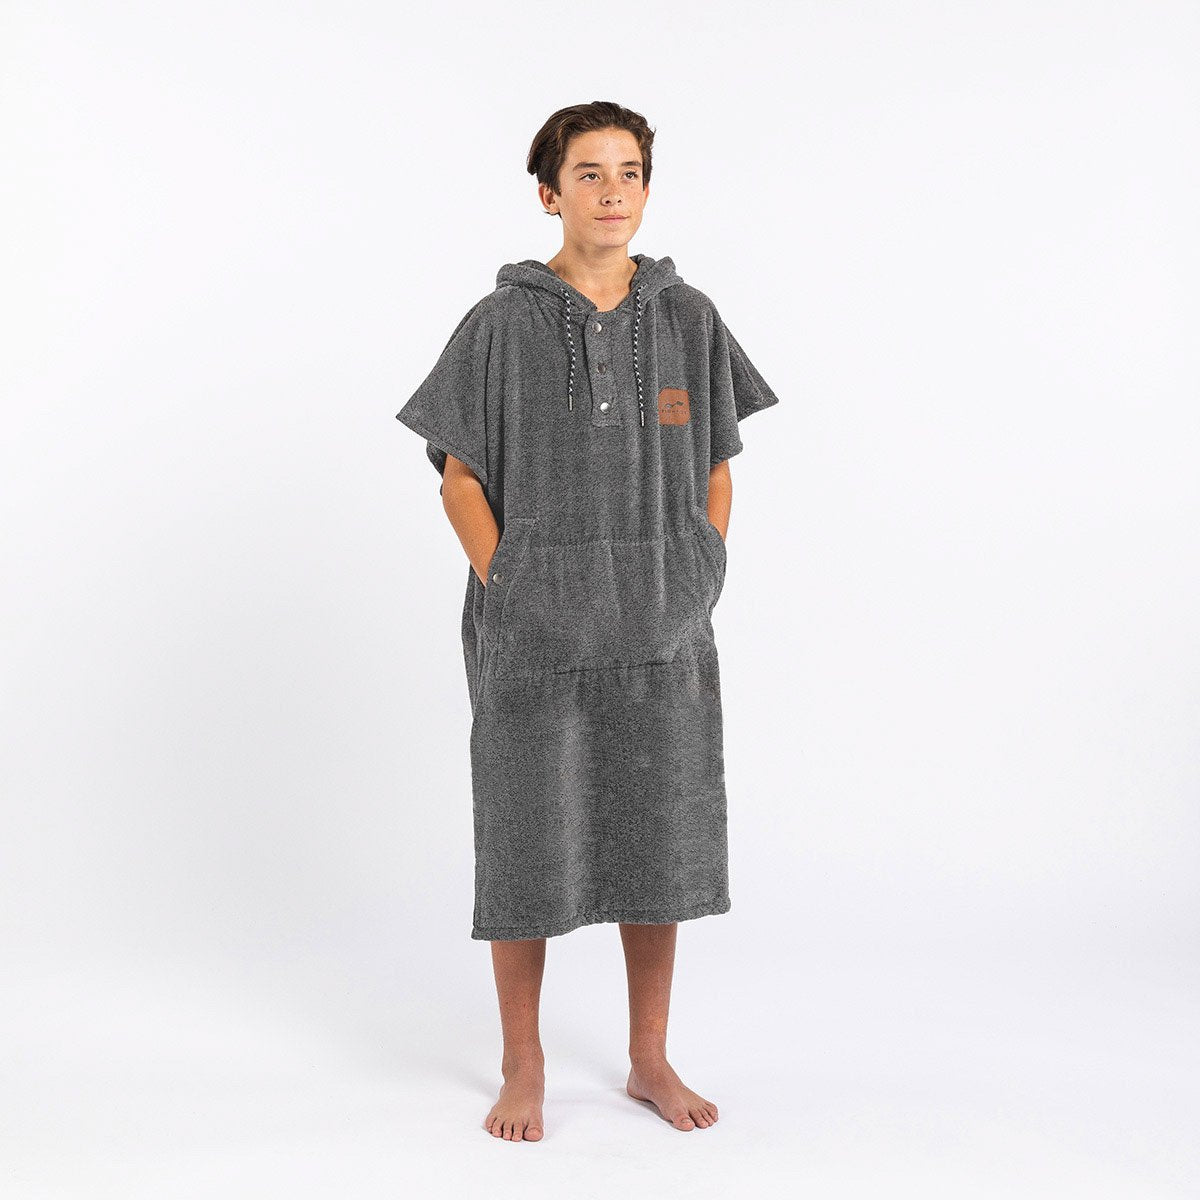 The Digs Changing Poncho - Heather Grey - Small